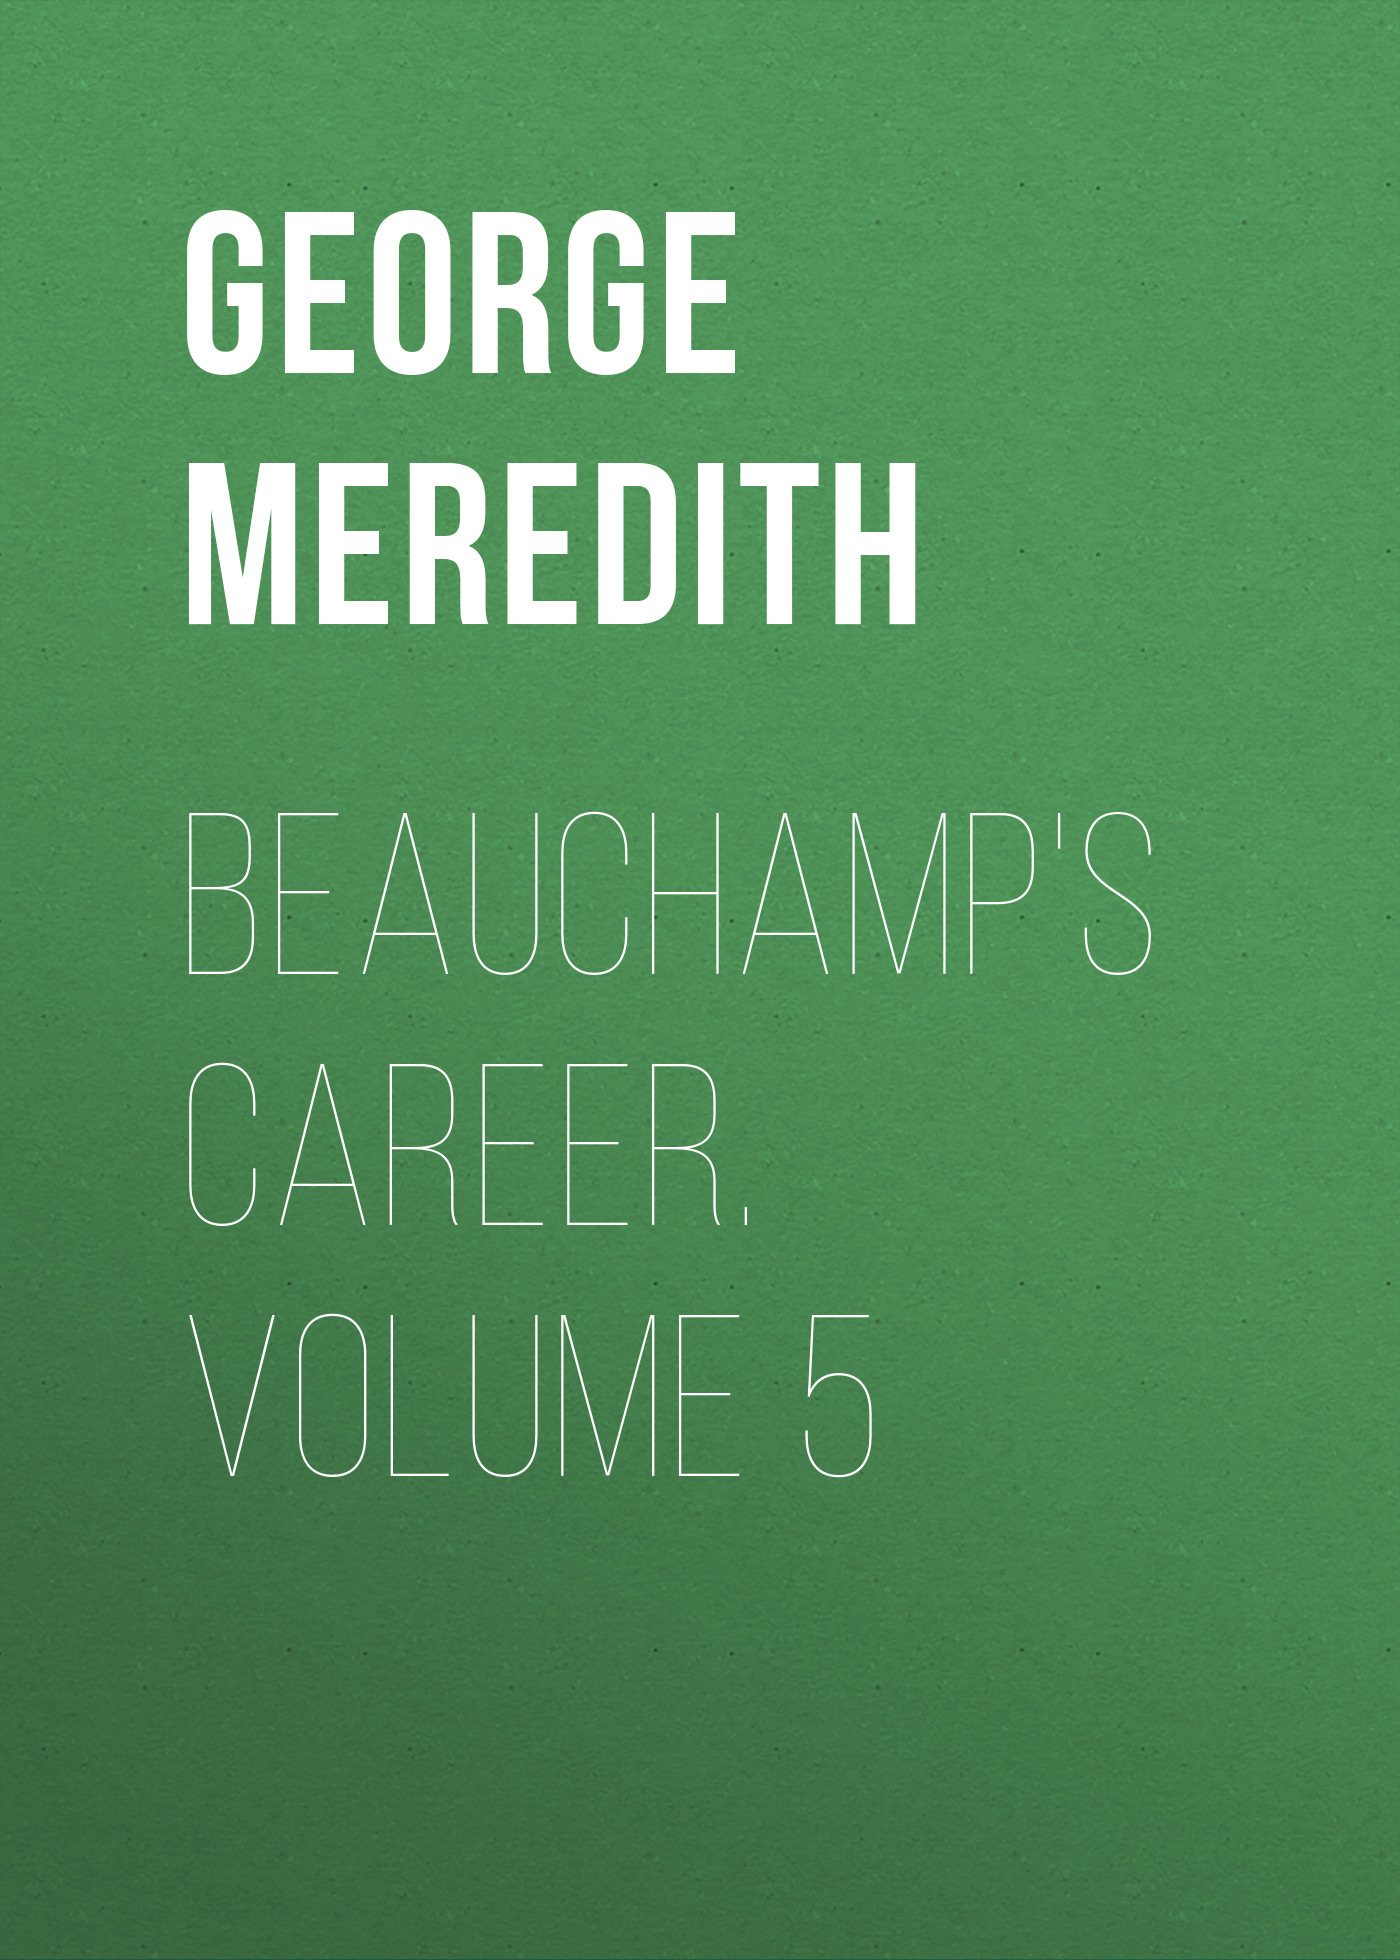 цена George Meredith Beauchamp's Career. Volume 5 в интернет-магазинах